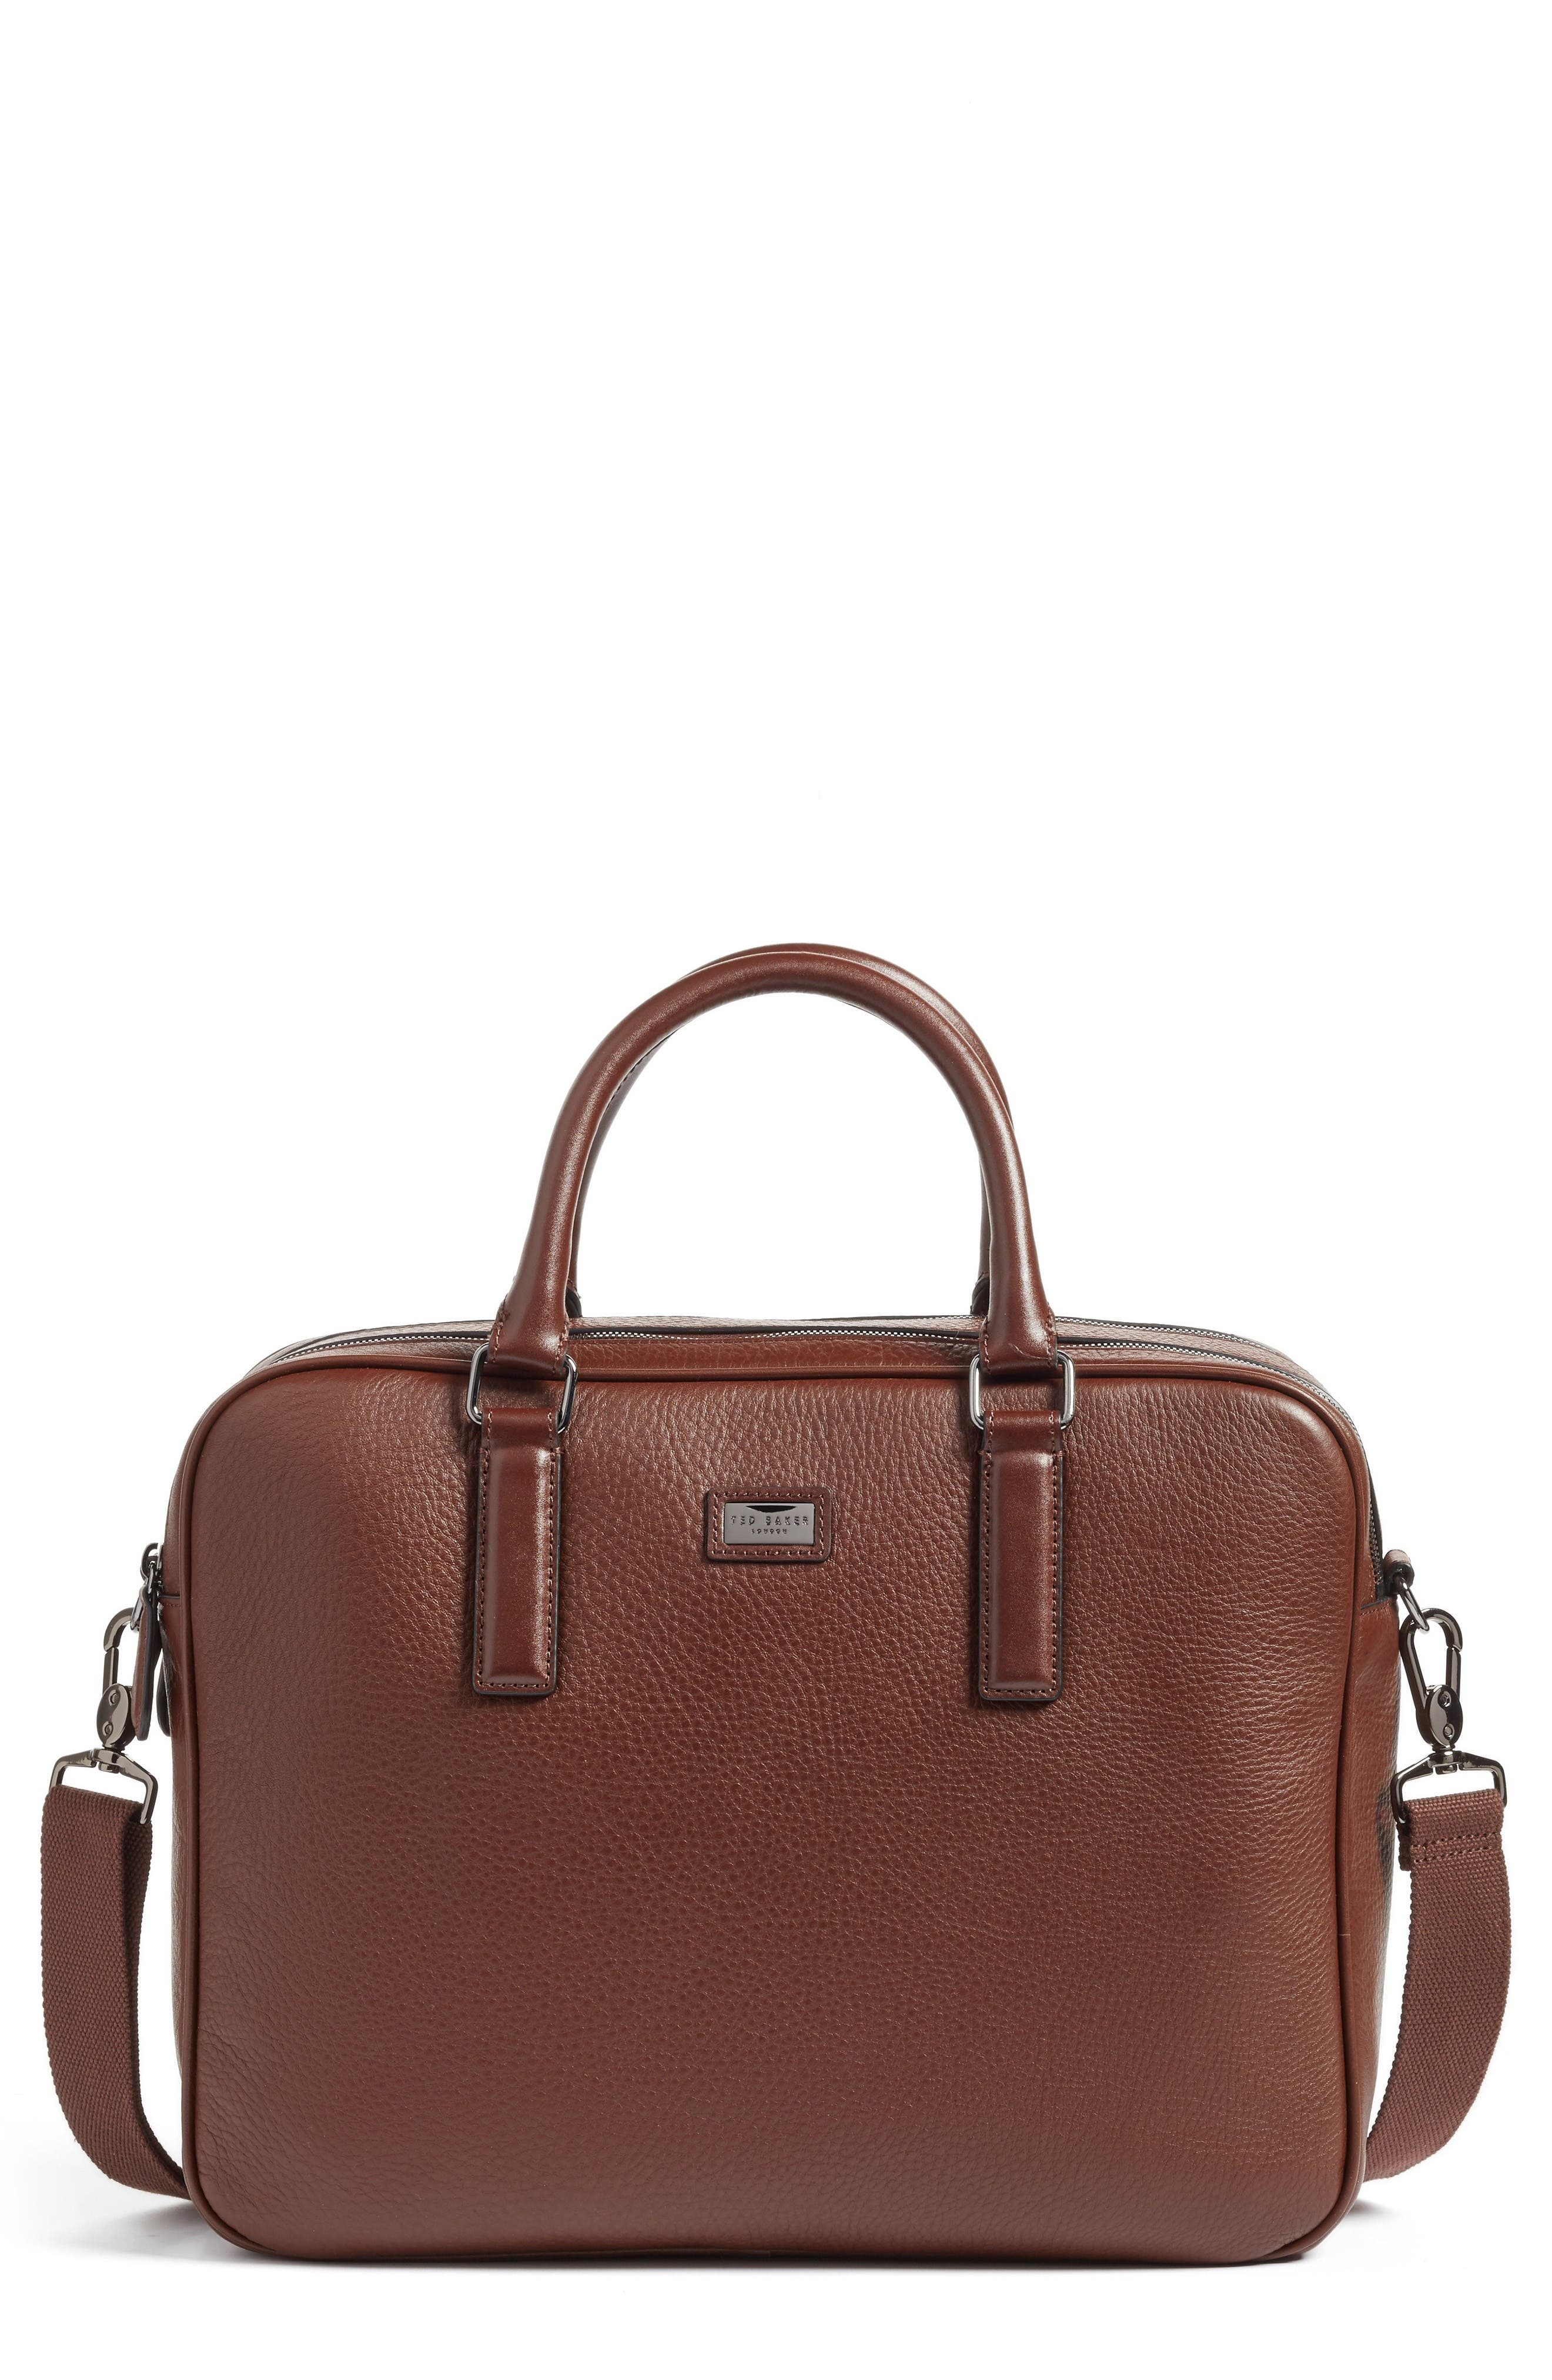 TED BAKER LONDON Leather Document Bag